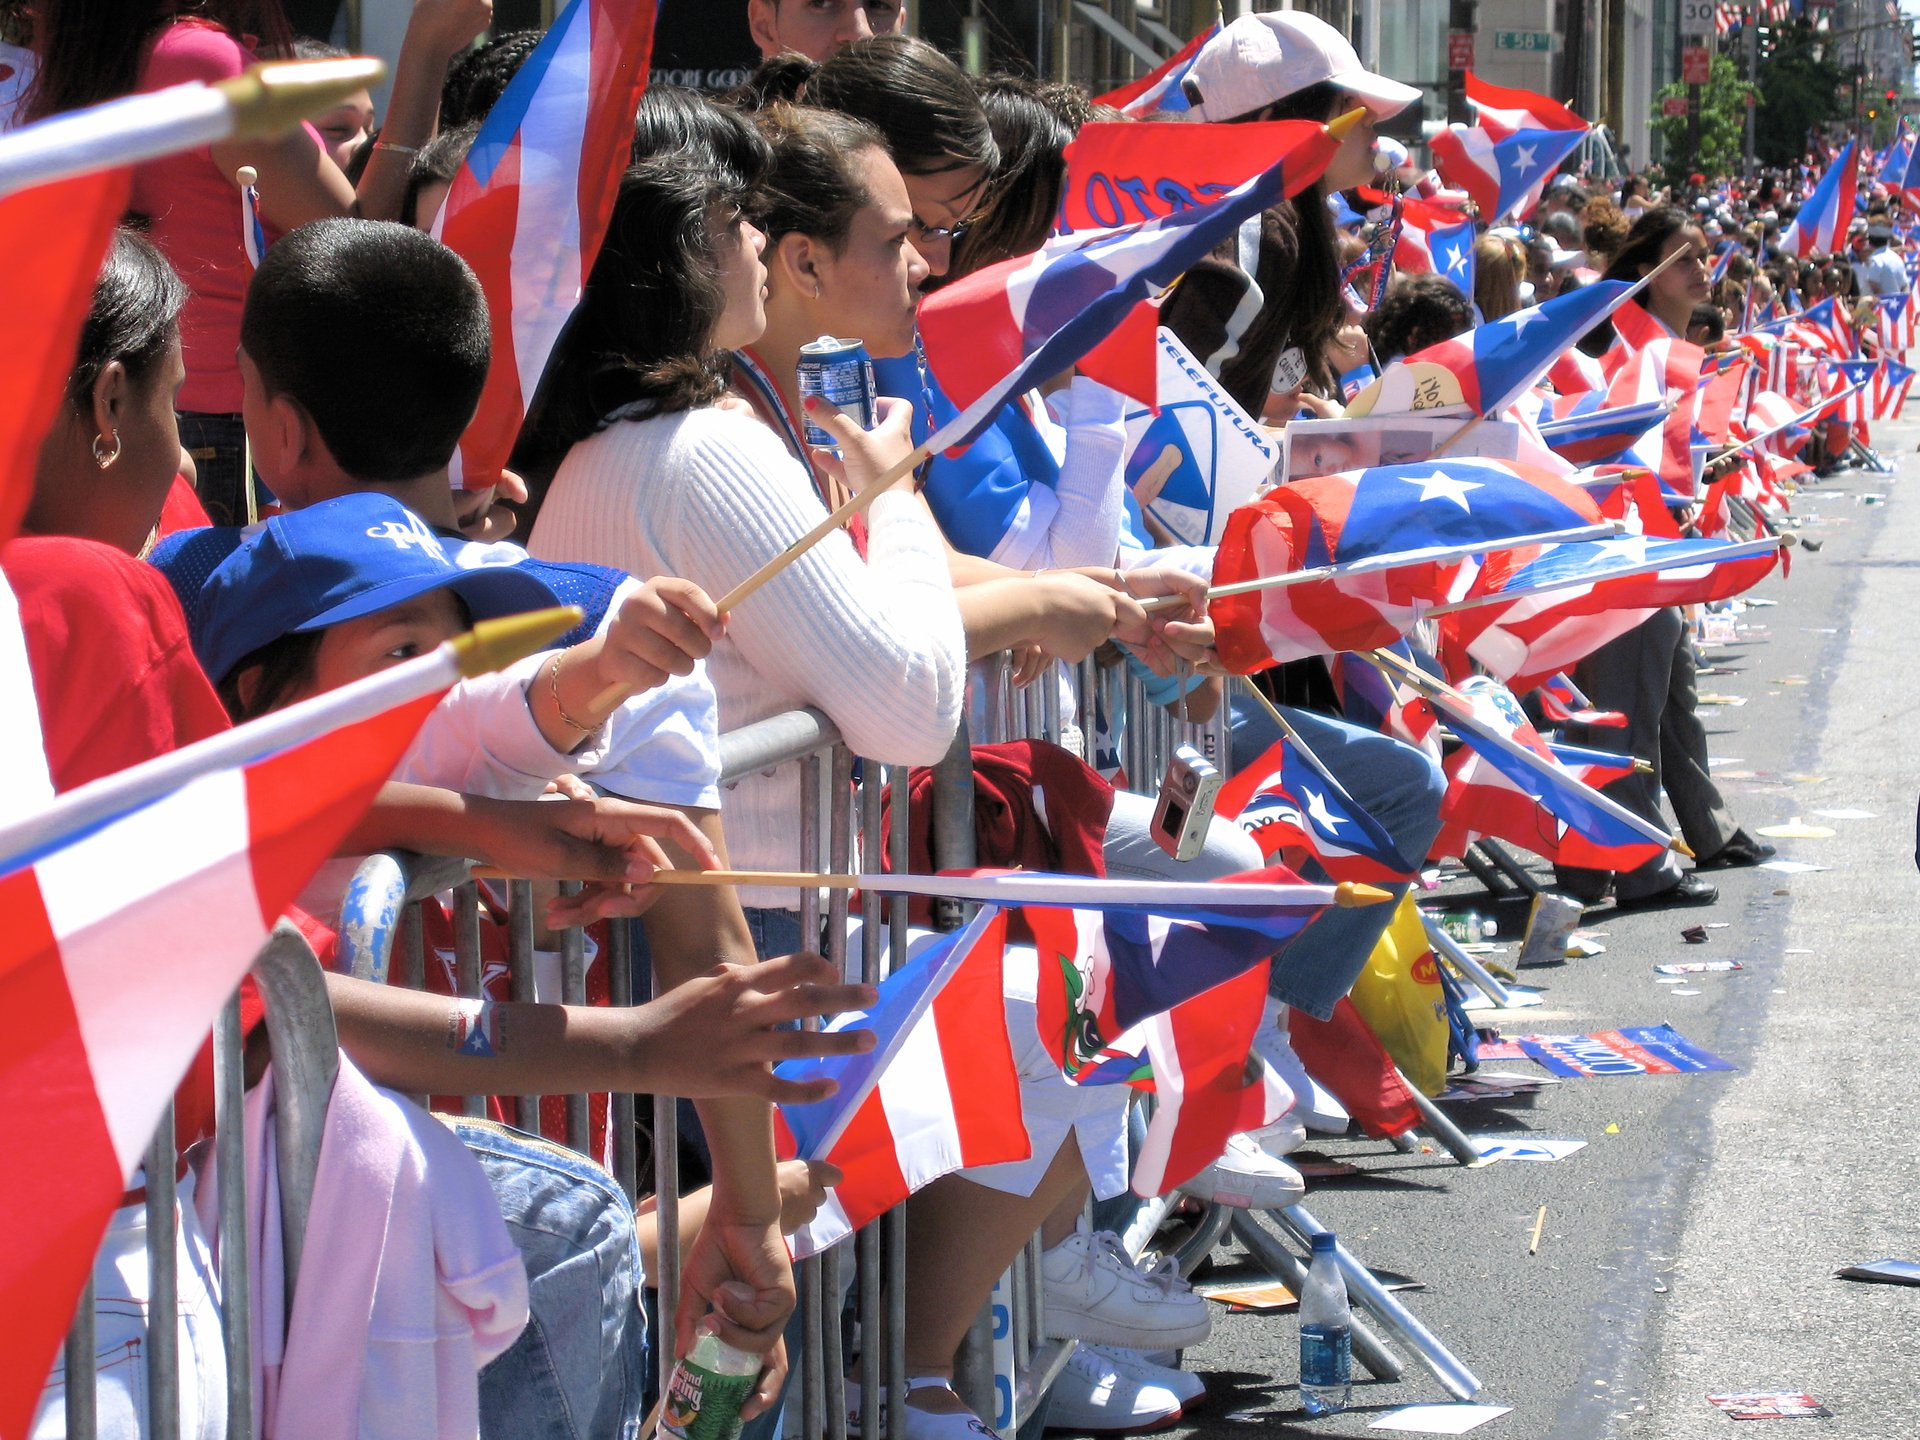 National Puerto Rican Day Parade in New York - Best Season 2020